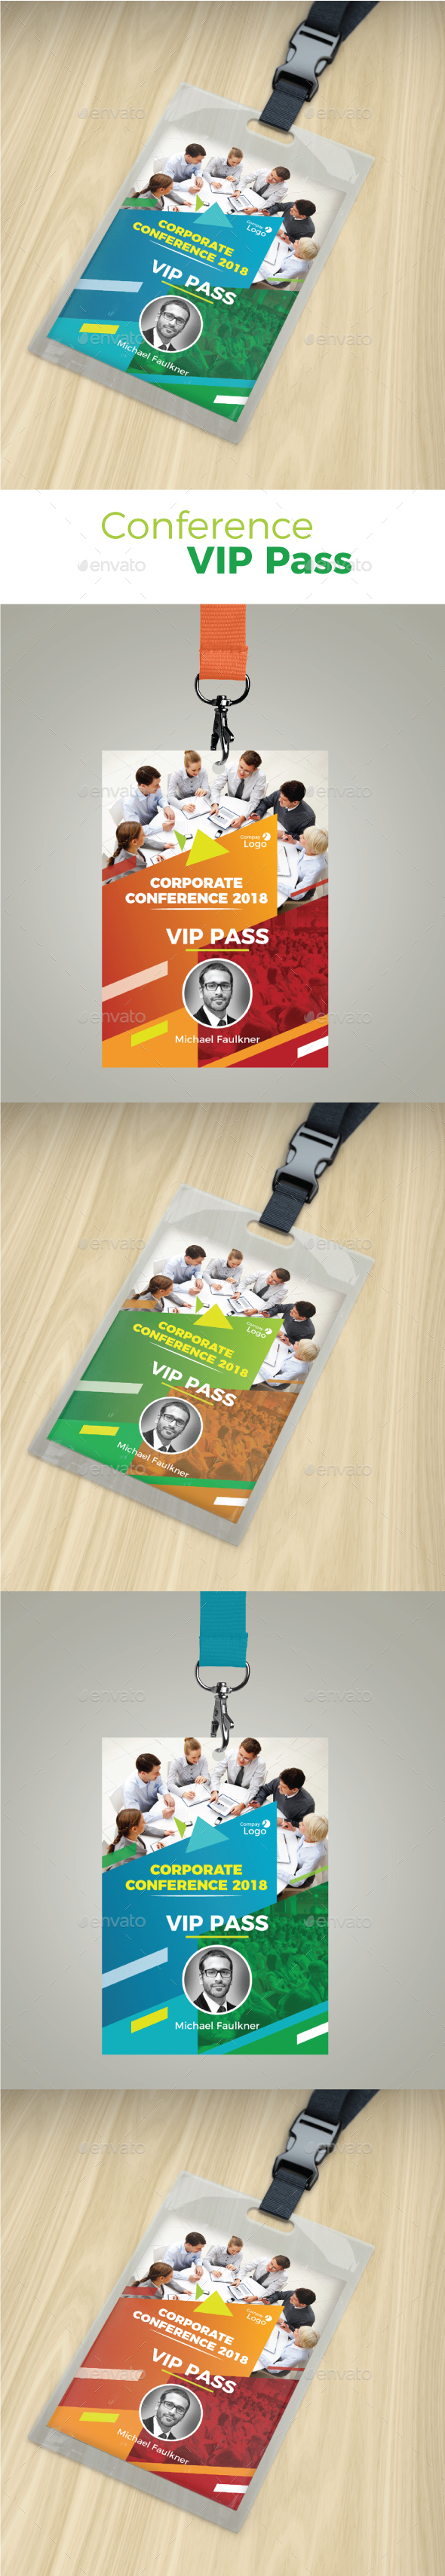 Conference VIP Pass - Miscellaneous Print Templates